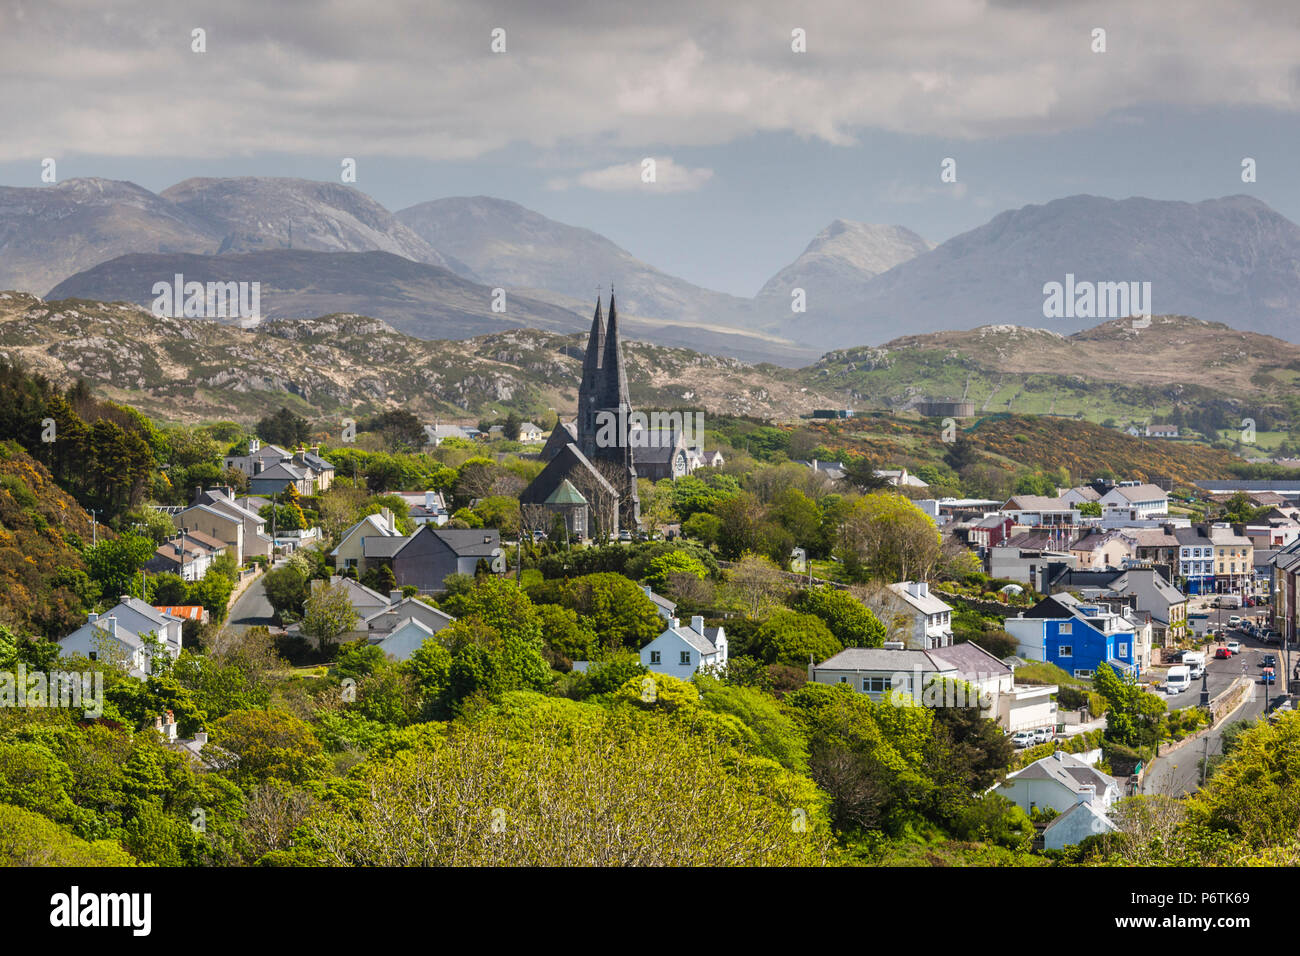 Ireland, County Galway, Clifden, elevated town view - Stock Image